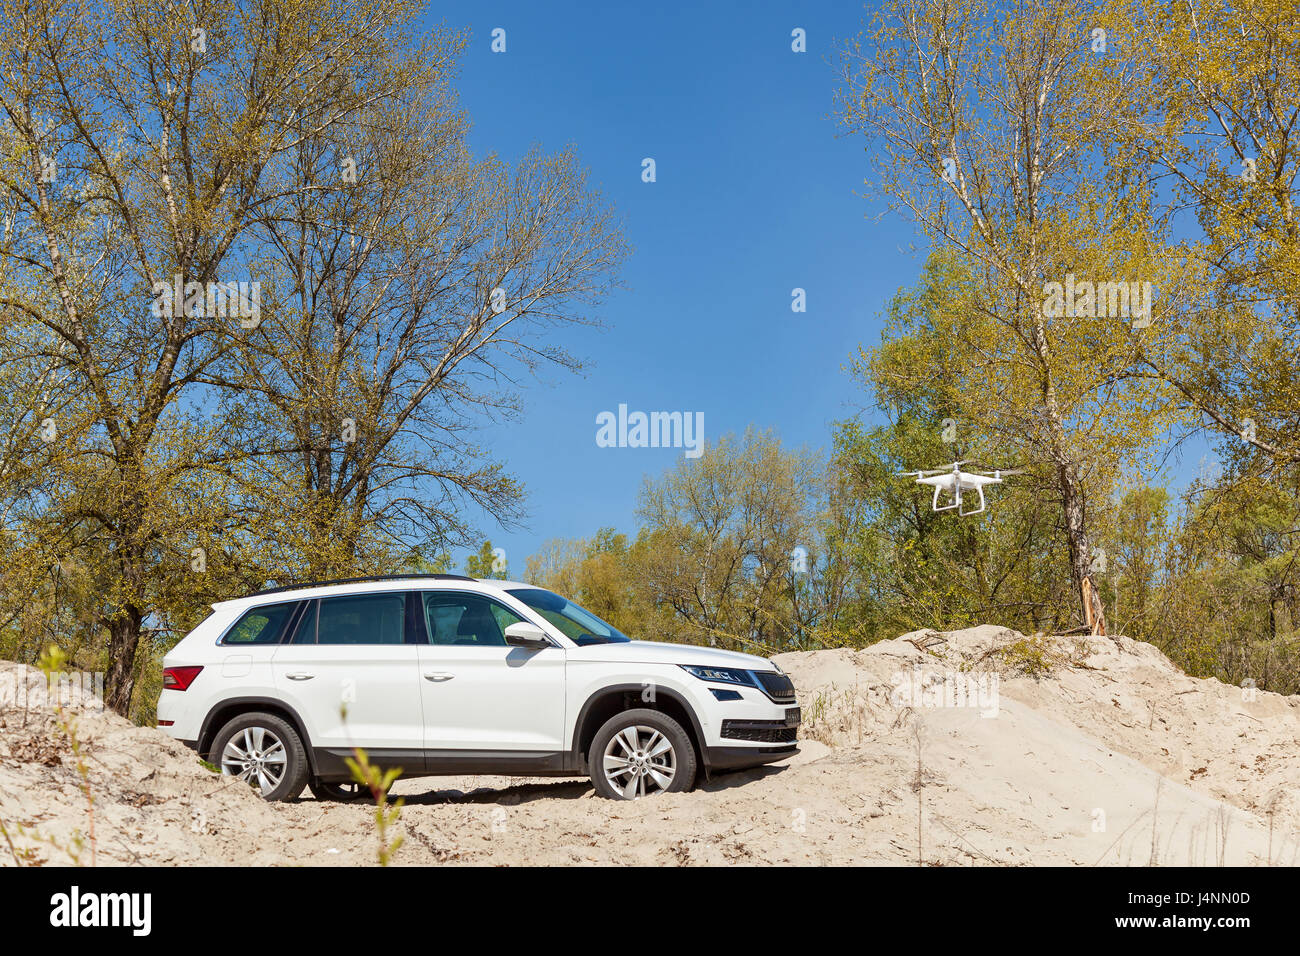 Ukraine, Kyiv 25 april 2017  car Skoda Kodiaq 2.0 TDi  quadcopter takes off video and photo of car from air - Stock Image